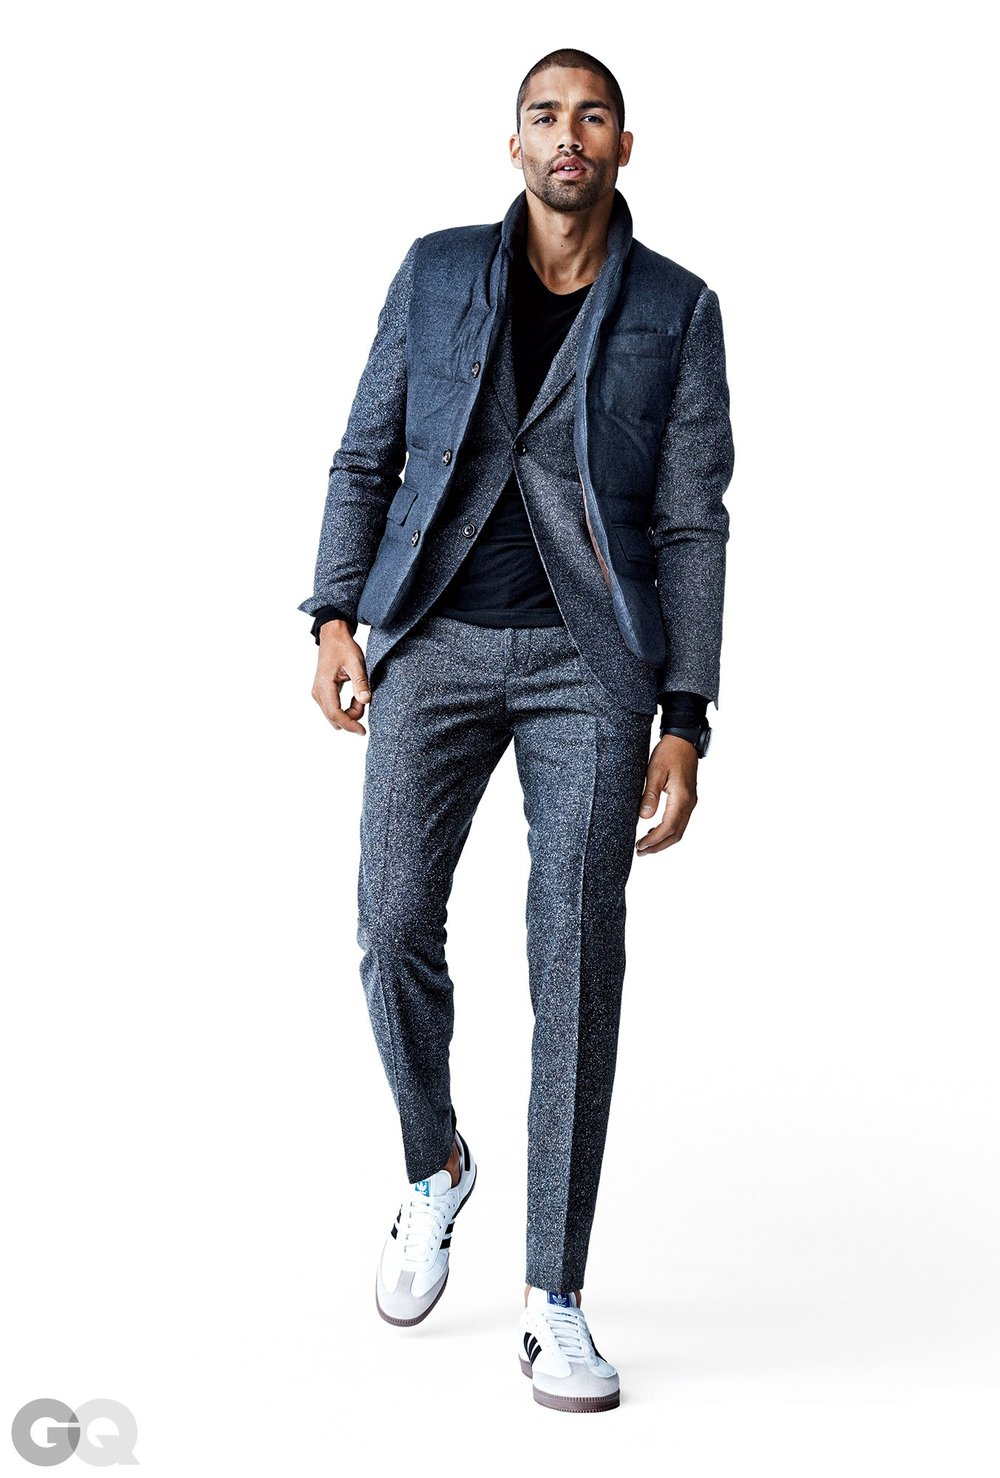 gq-guide-to-suits-fabric-2015-06.jpg